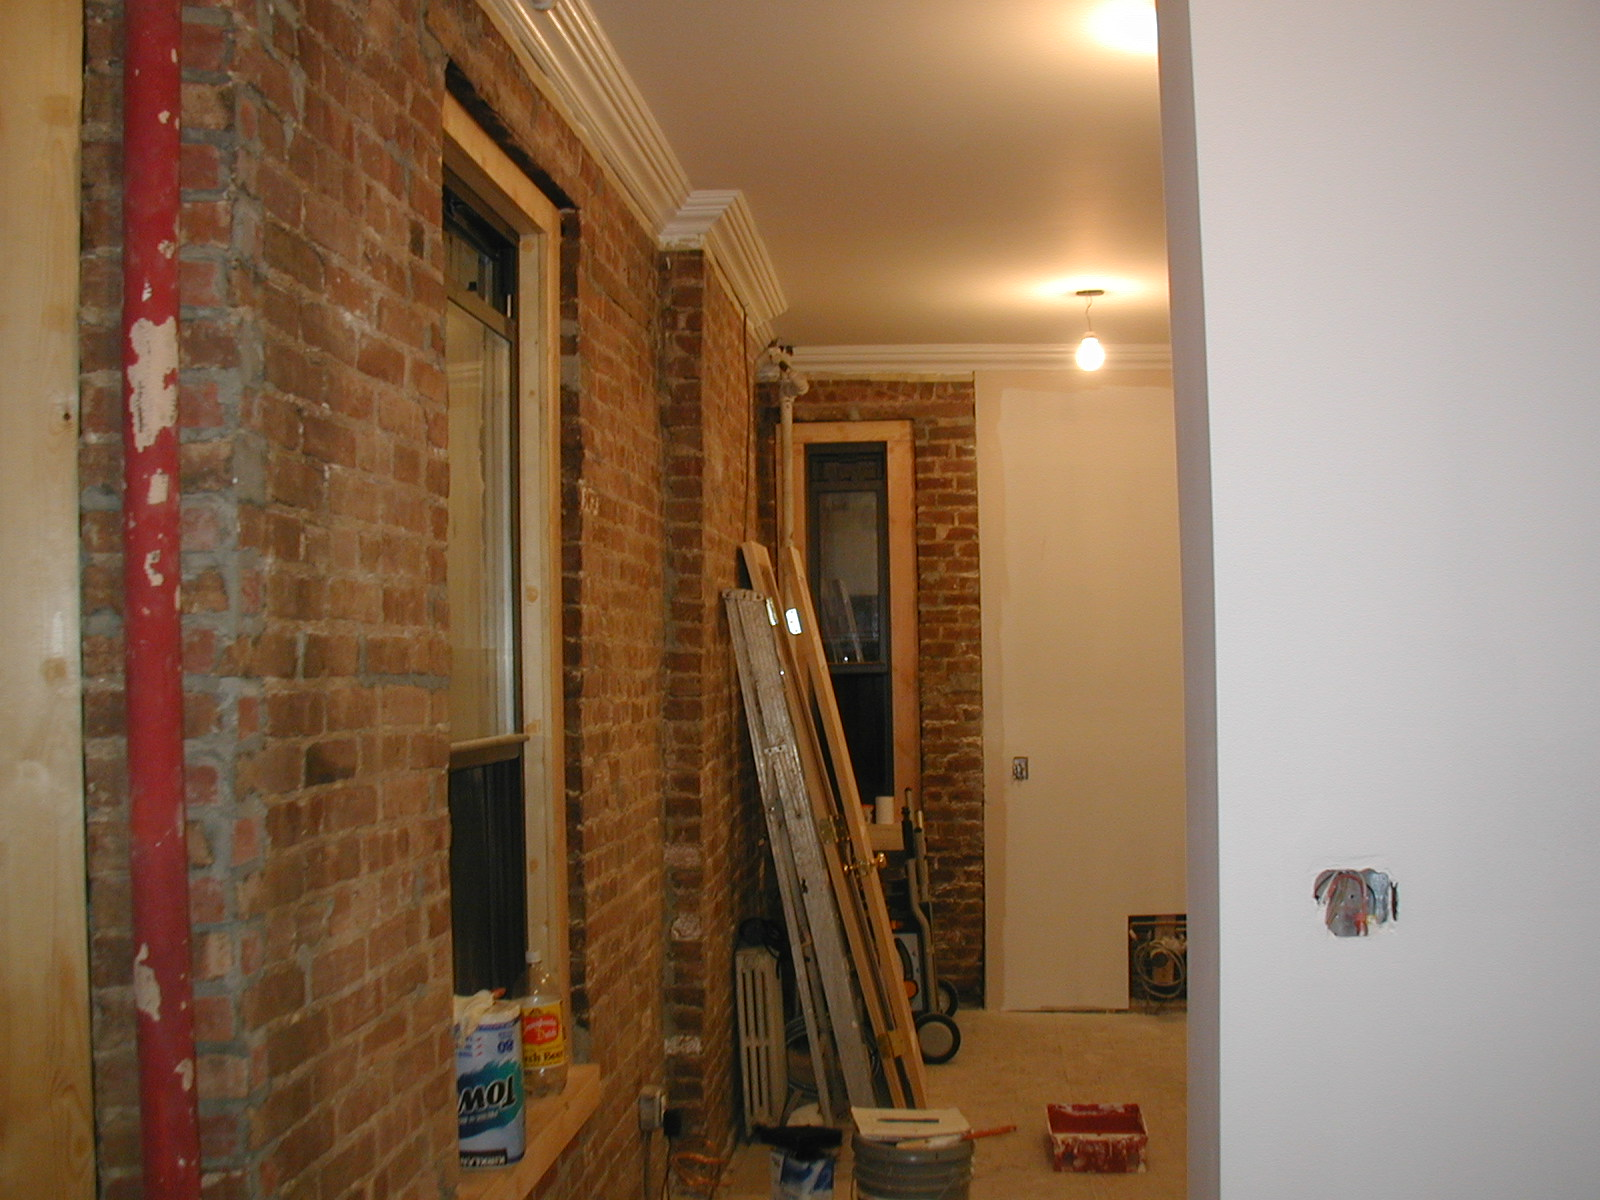 Exposed Bricks And Finish Painting Lee Wiring In Brick Wall A Nice Long Shot Of The That Would Be Kitchen Dinning Room